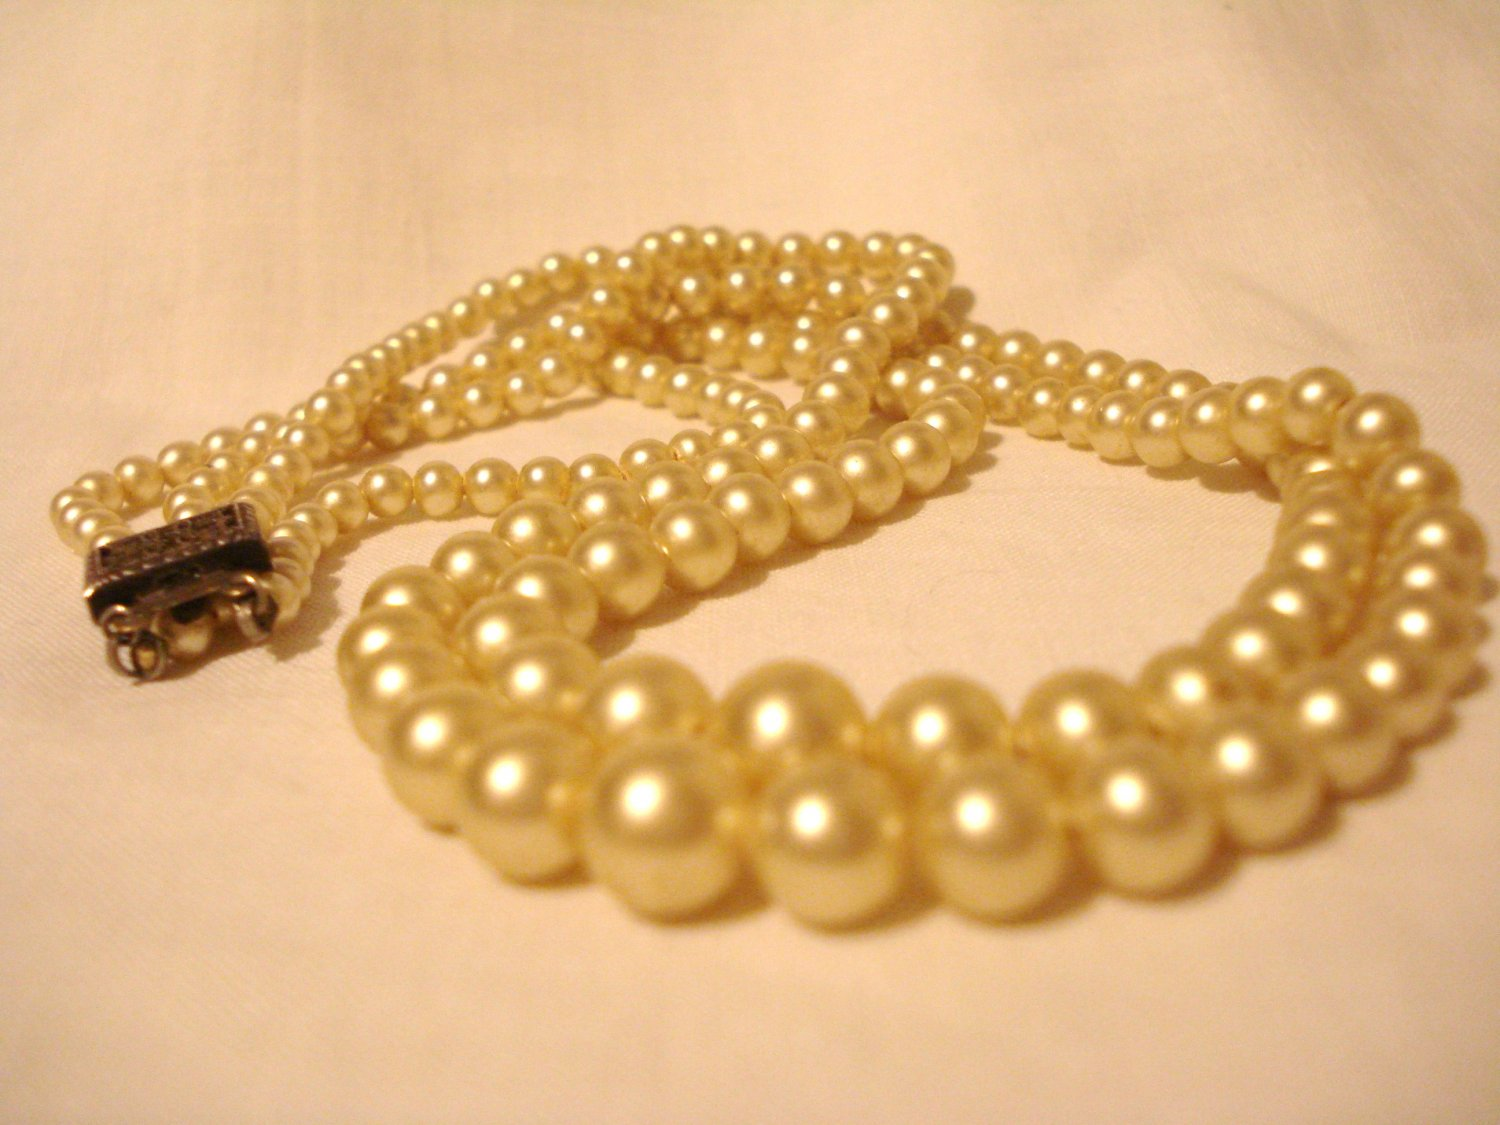 Double strand similated pearls 15/16 inches sterling filigree box clasp  vintage ll3108